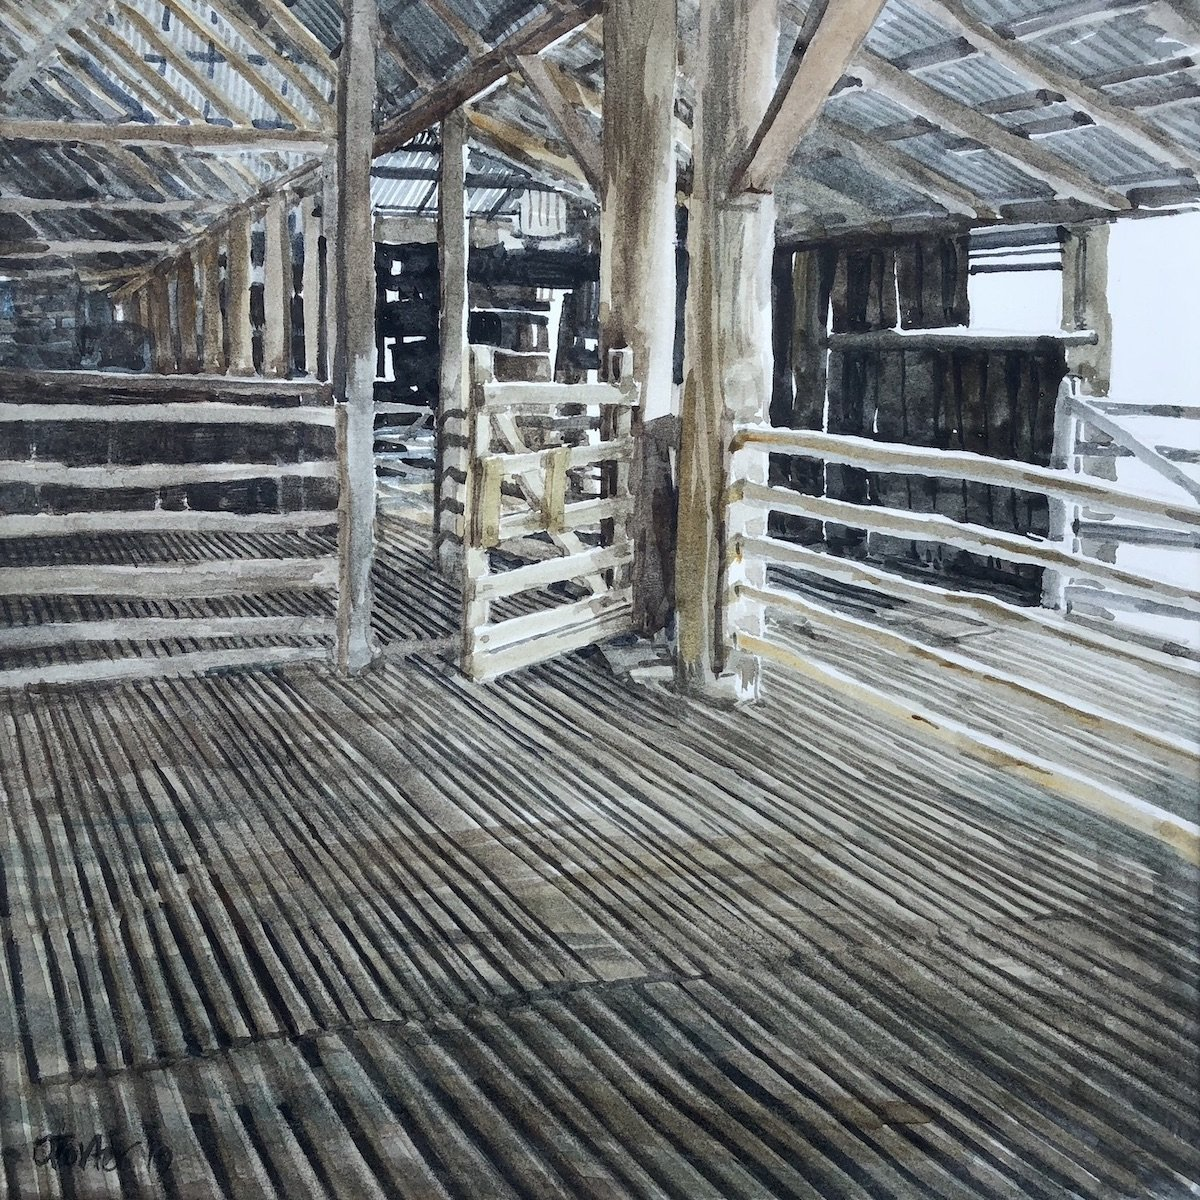 Watercolour painting by Christine Porter showing the inside of a large shearing shed, with the subject being a small gte. The floor boards and roof beams are behind it.